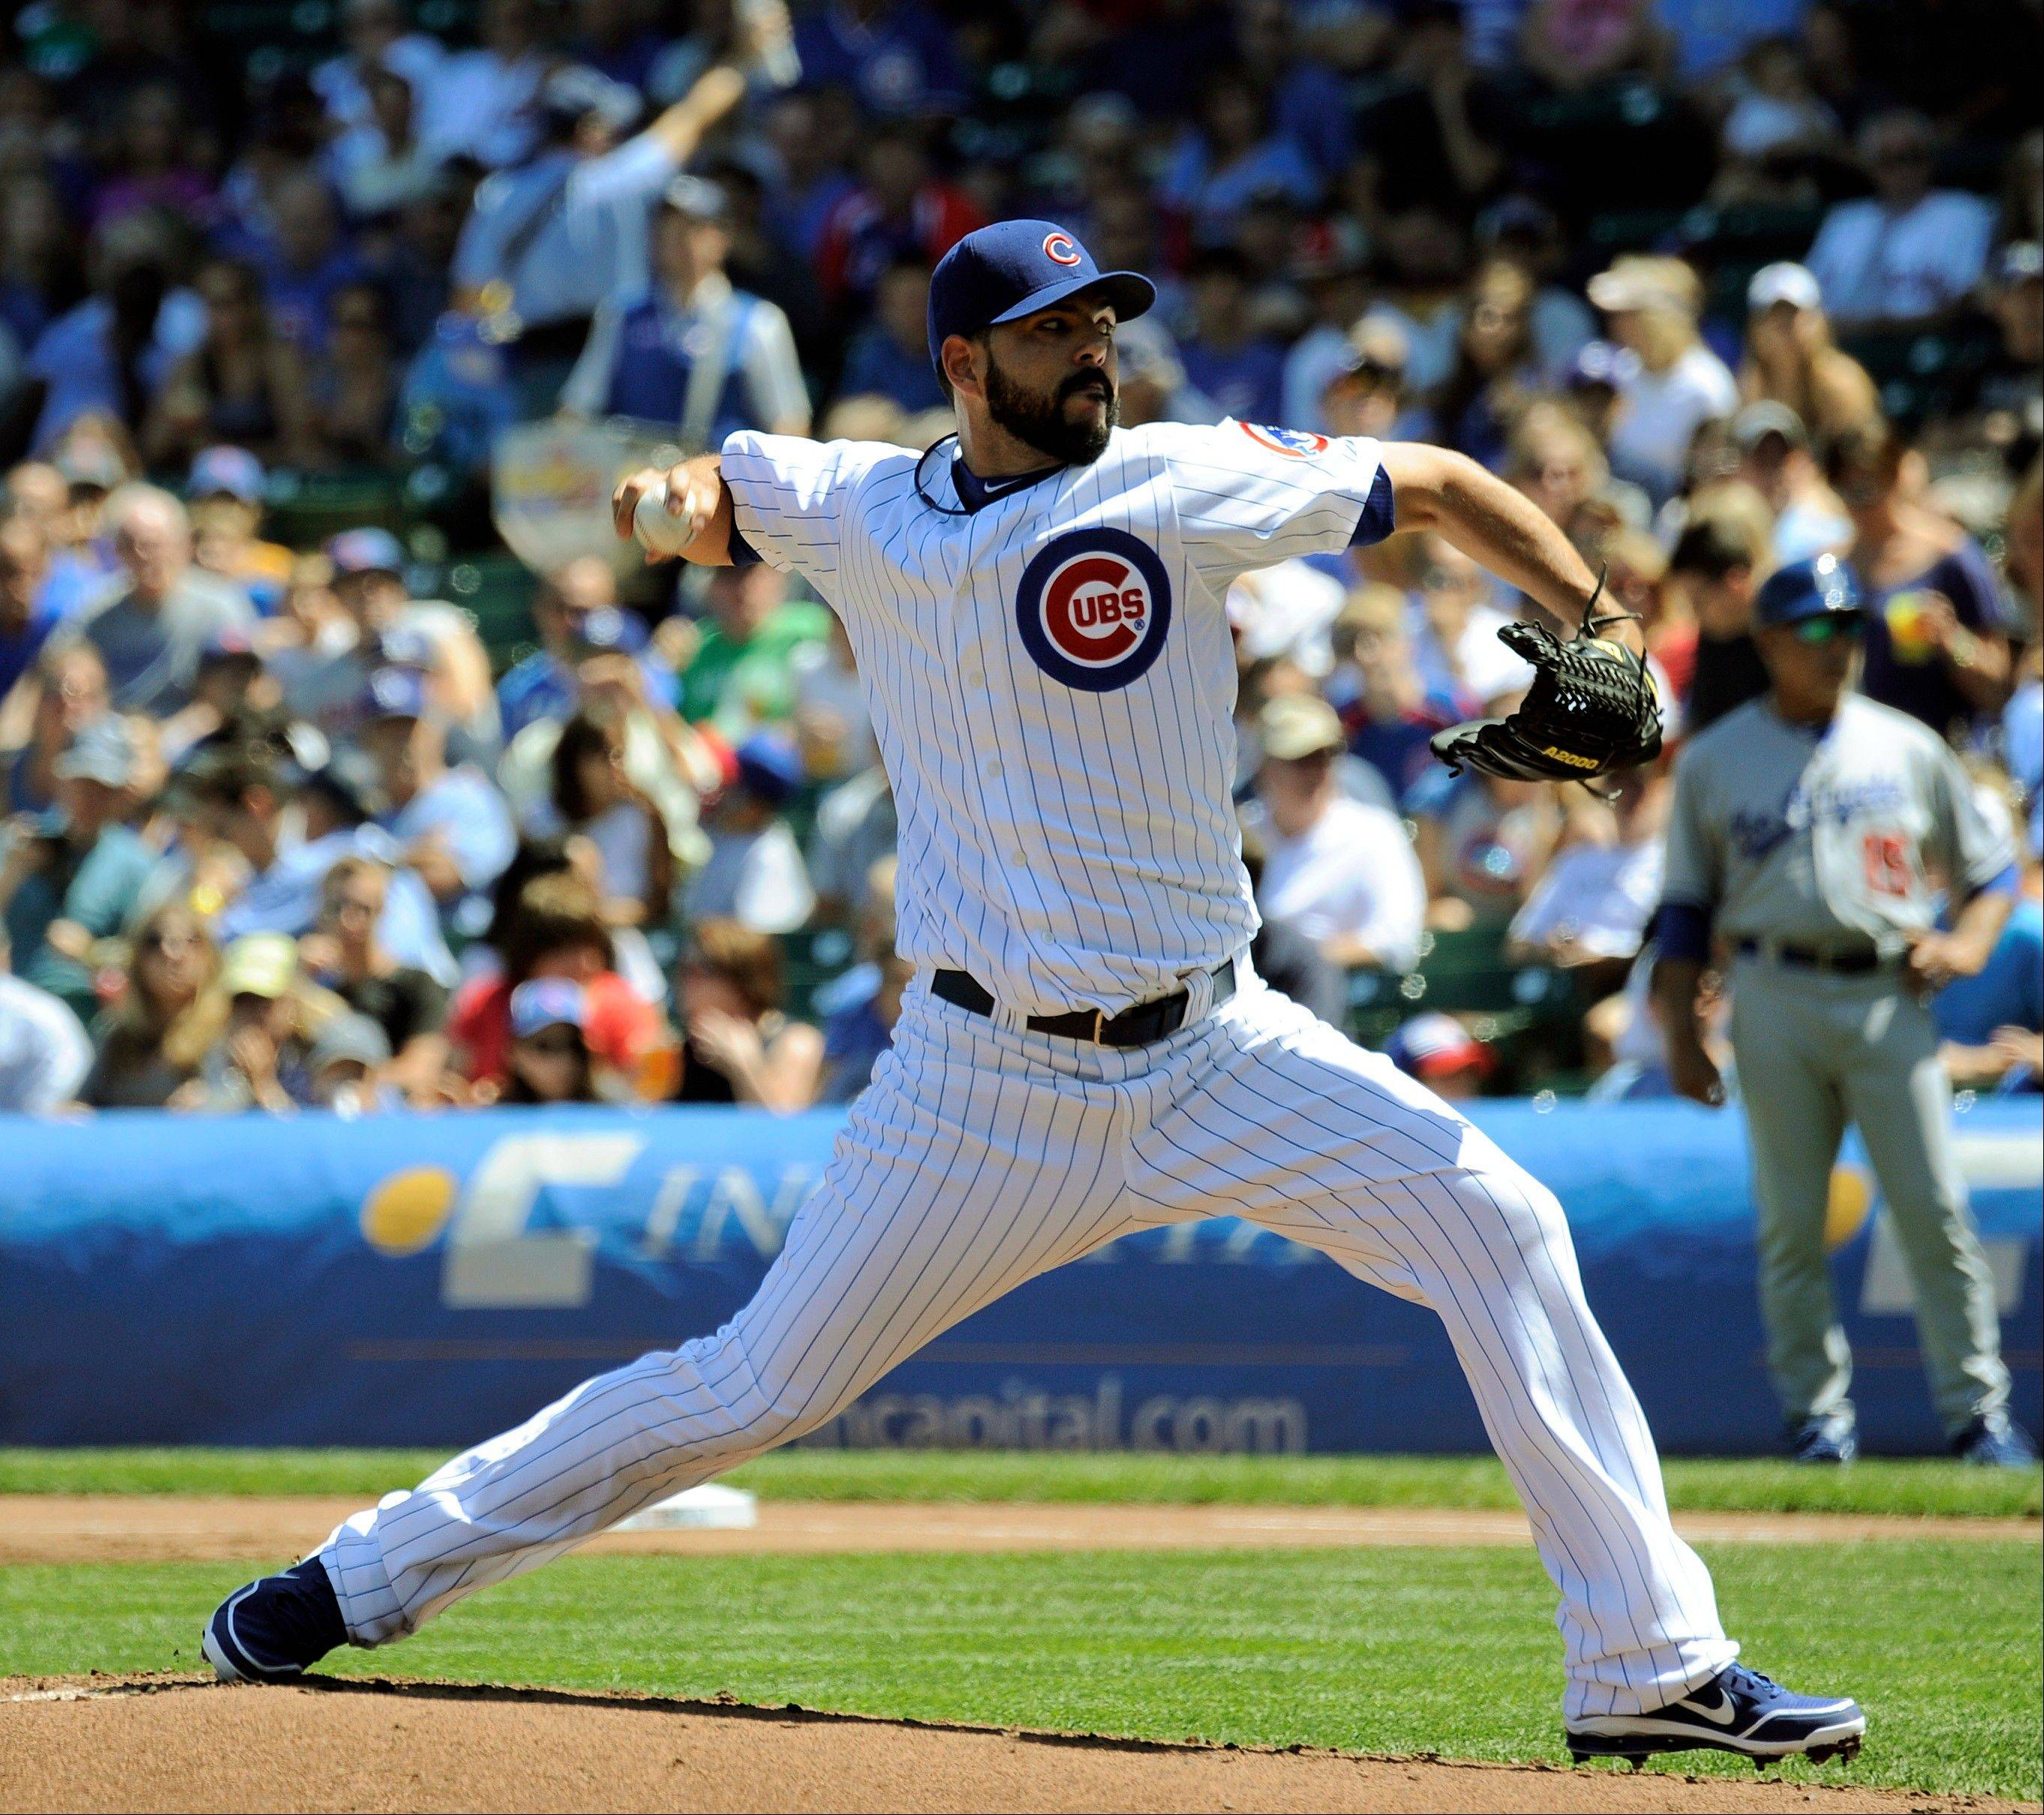 Cubs starter Carlos Villanueva throws a pitch in the first inning Sunday against the Dodgers.